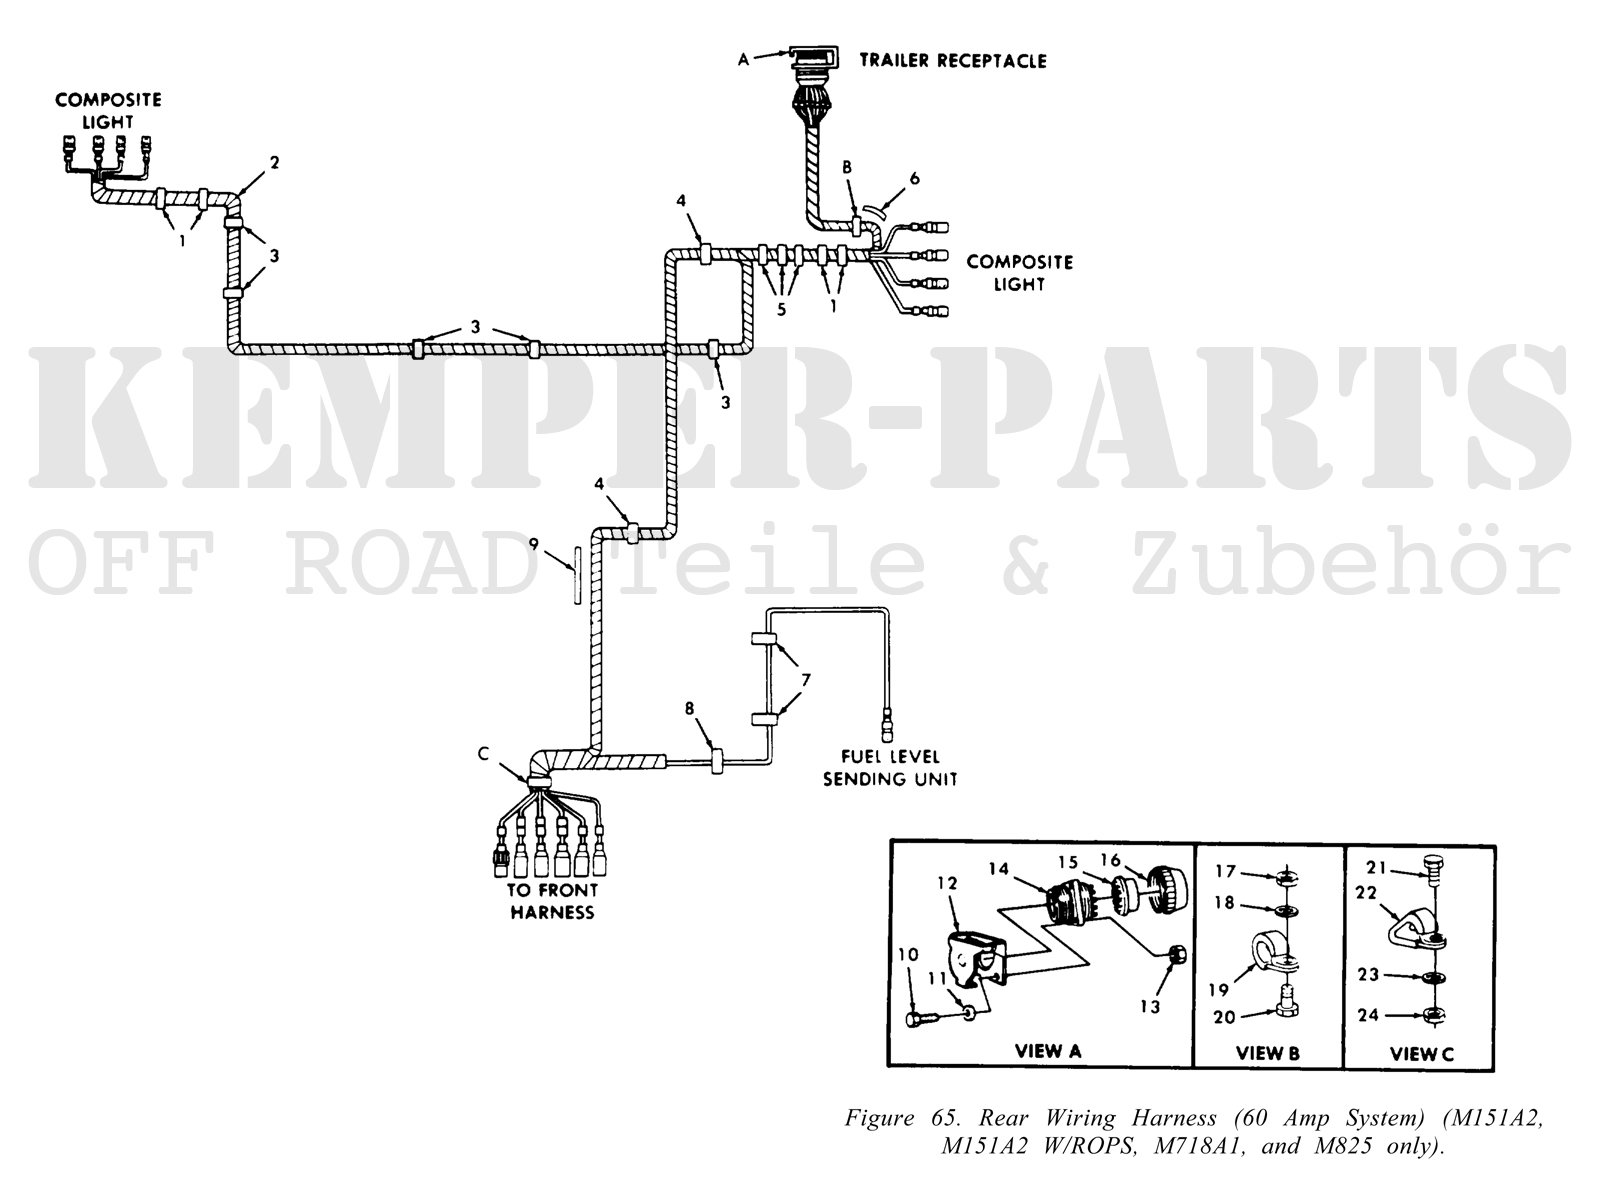 m151 wiring diagram wiring diagram schematics jeep compass wiring diagram group 6 electrical systems m151